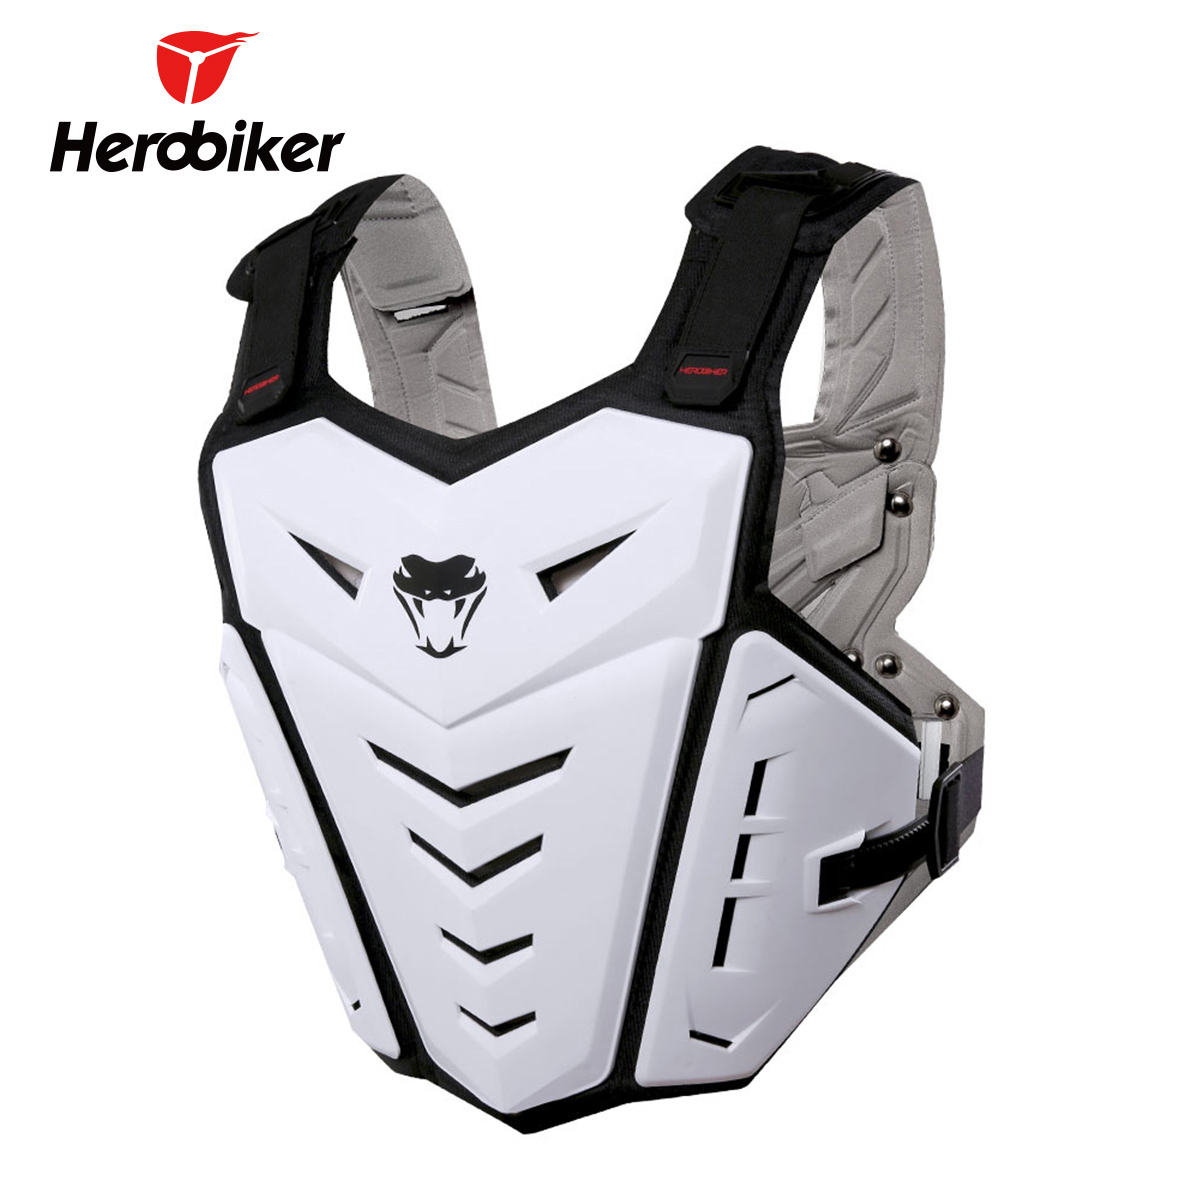 HEROBIKER Motorcycle Jacket Body Armor Motorcycle Motocross Moto Vest Back Chest Protector Off-Road Dirt Bike Protective Gear crf50 frame battery box dirt pit bike case holder off road motorcycle apollo 110 chinese motocross